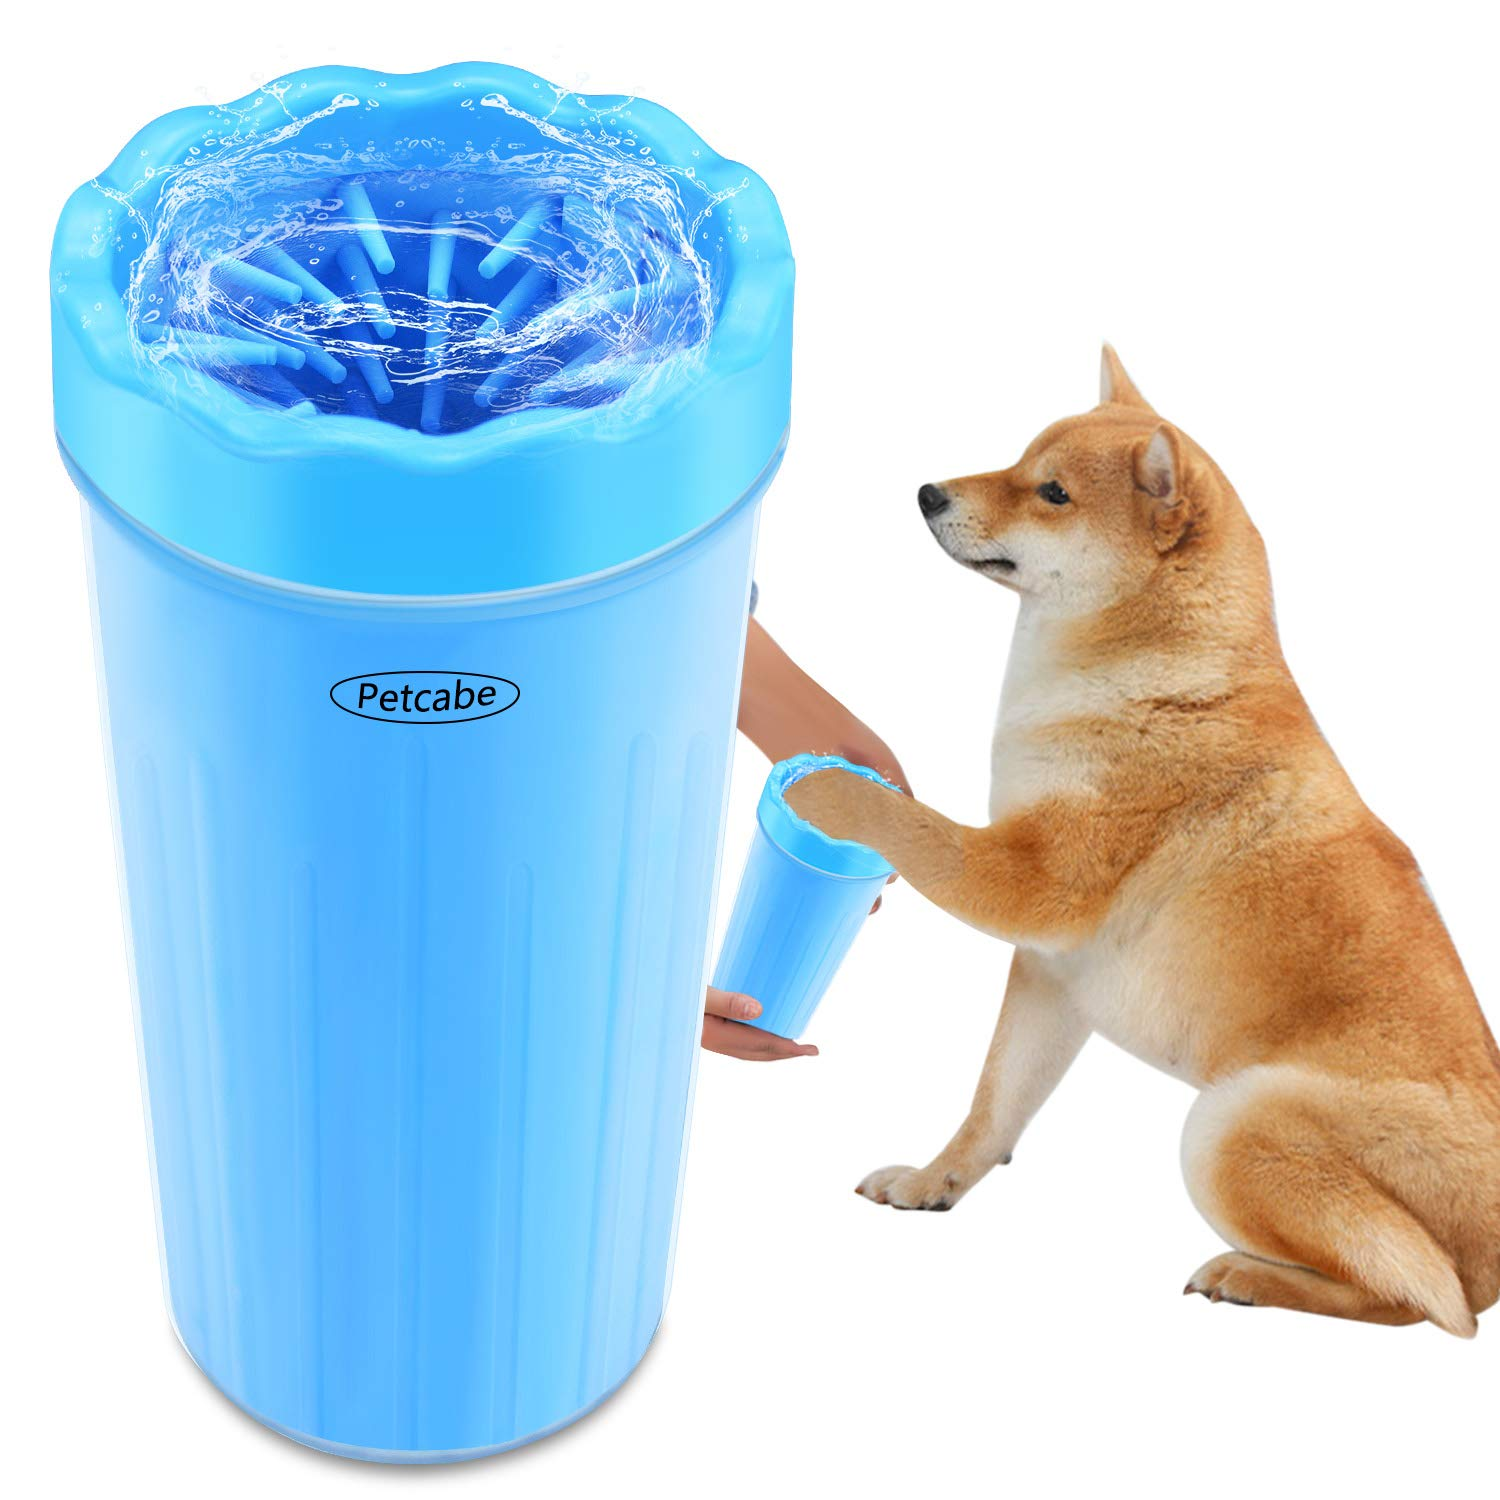 Petcabe Portable Dog Paw Cleaner Pet Cleaning Brush Cup Dog Foot Cleaner (Large)